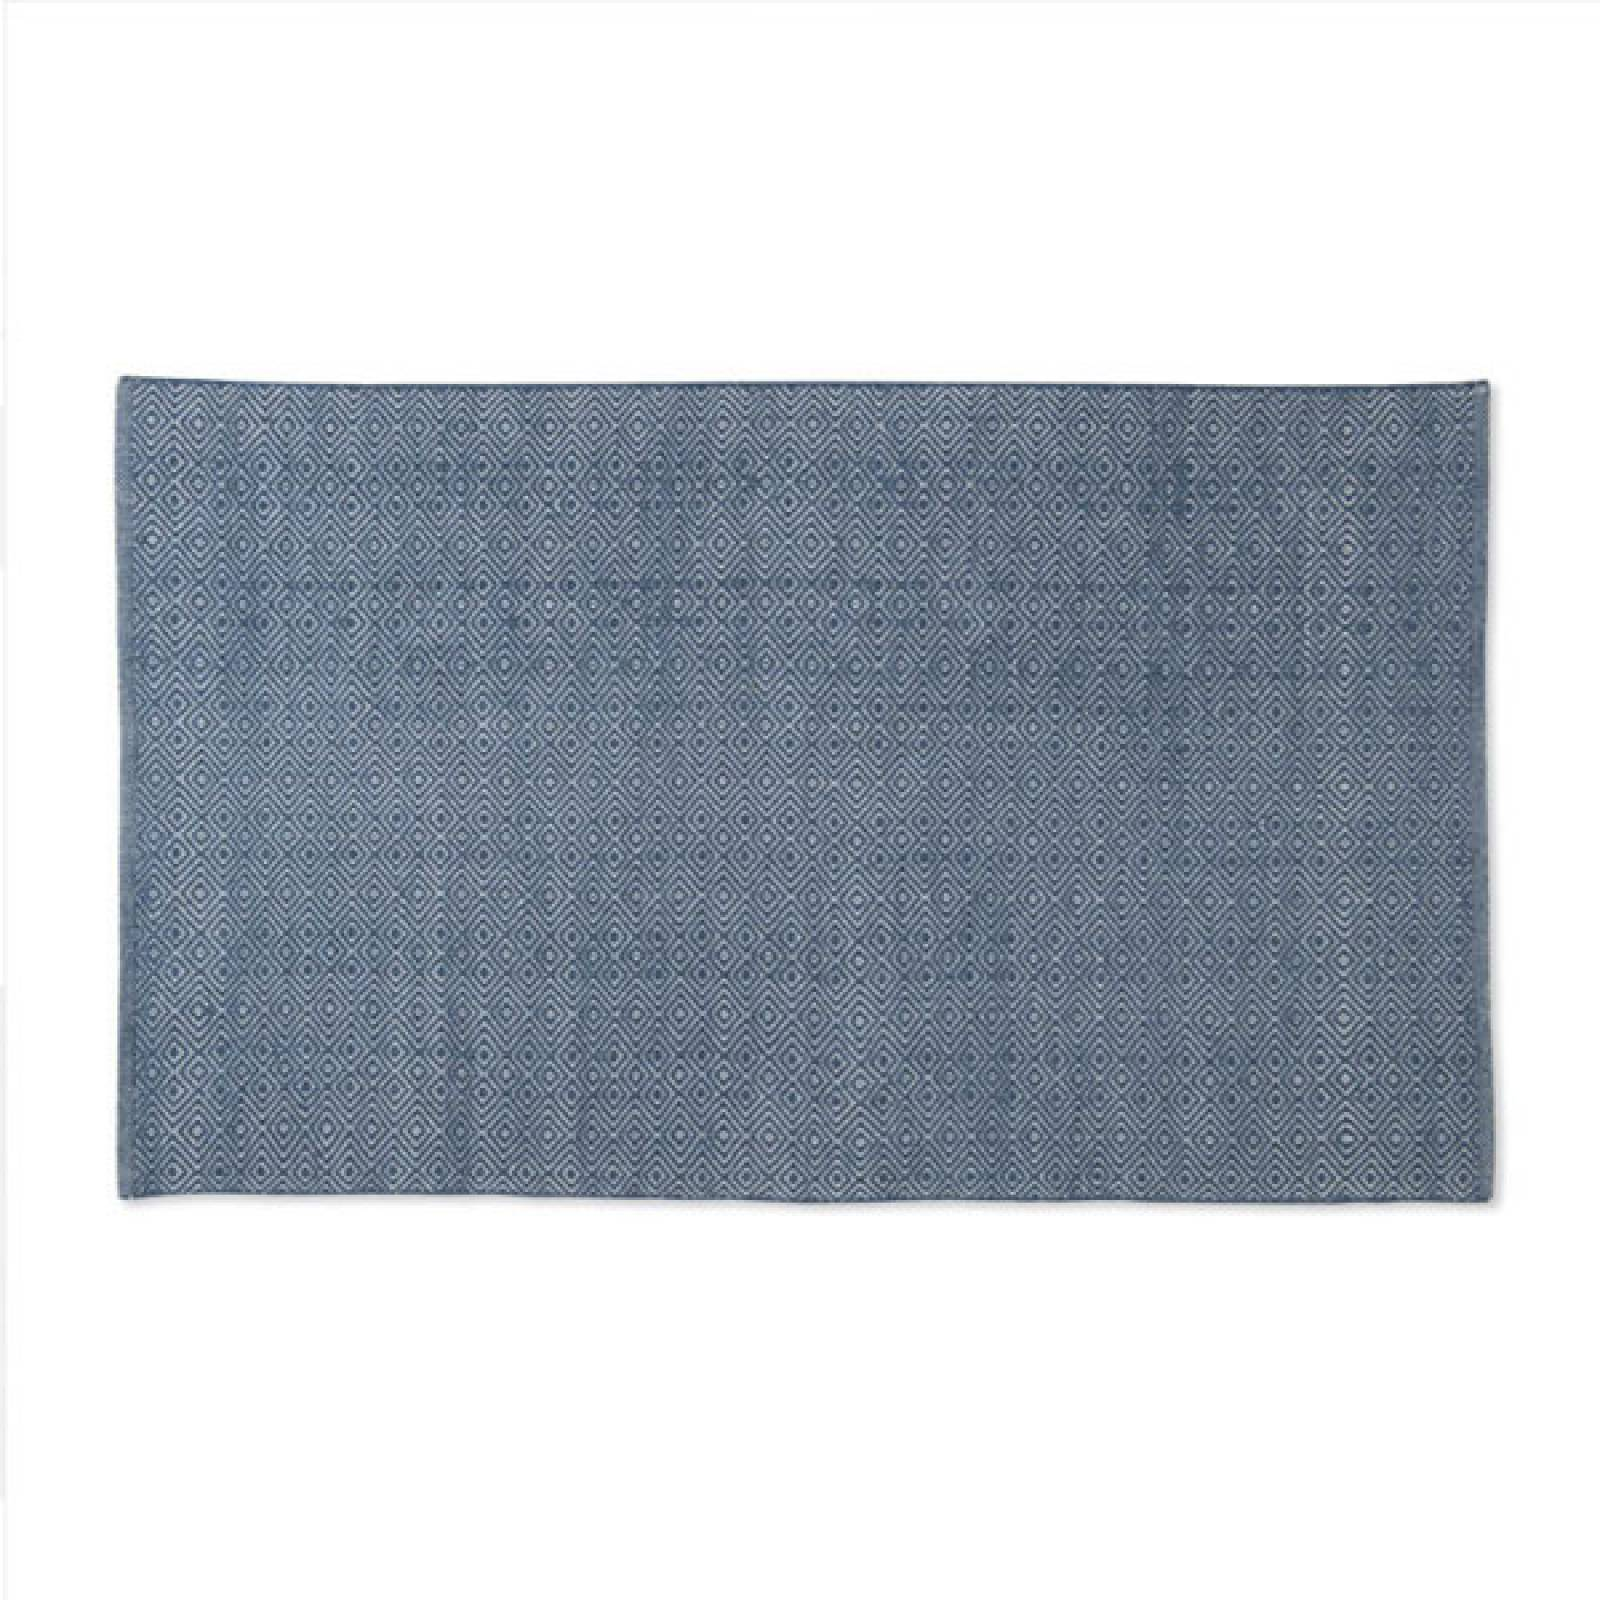 Diamond NAVY 150cmx90cm Recycled Bottle Rug thumbnails